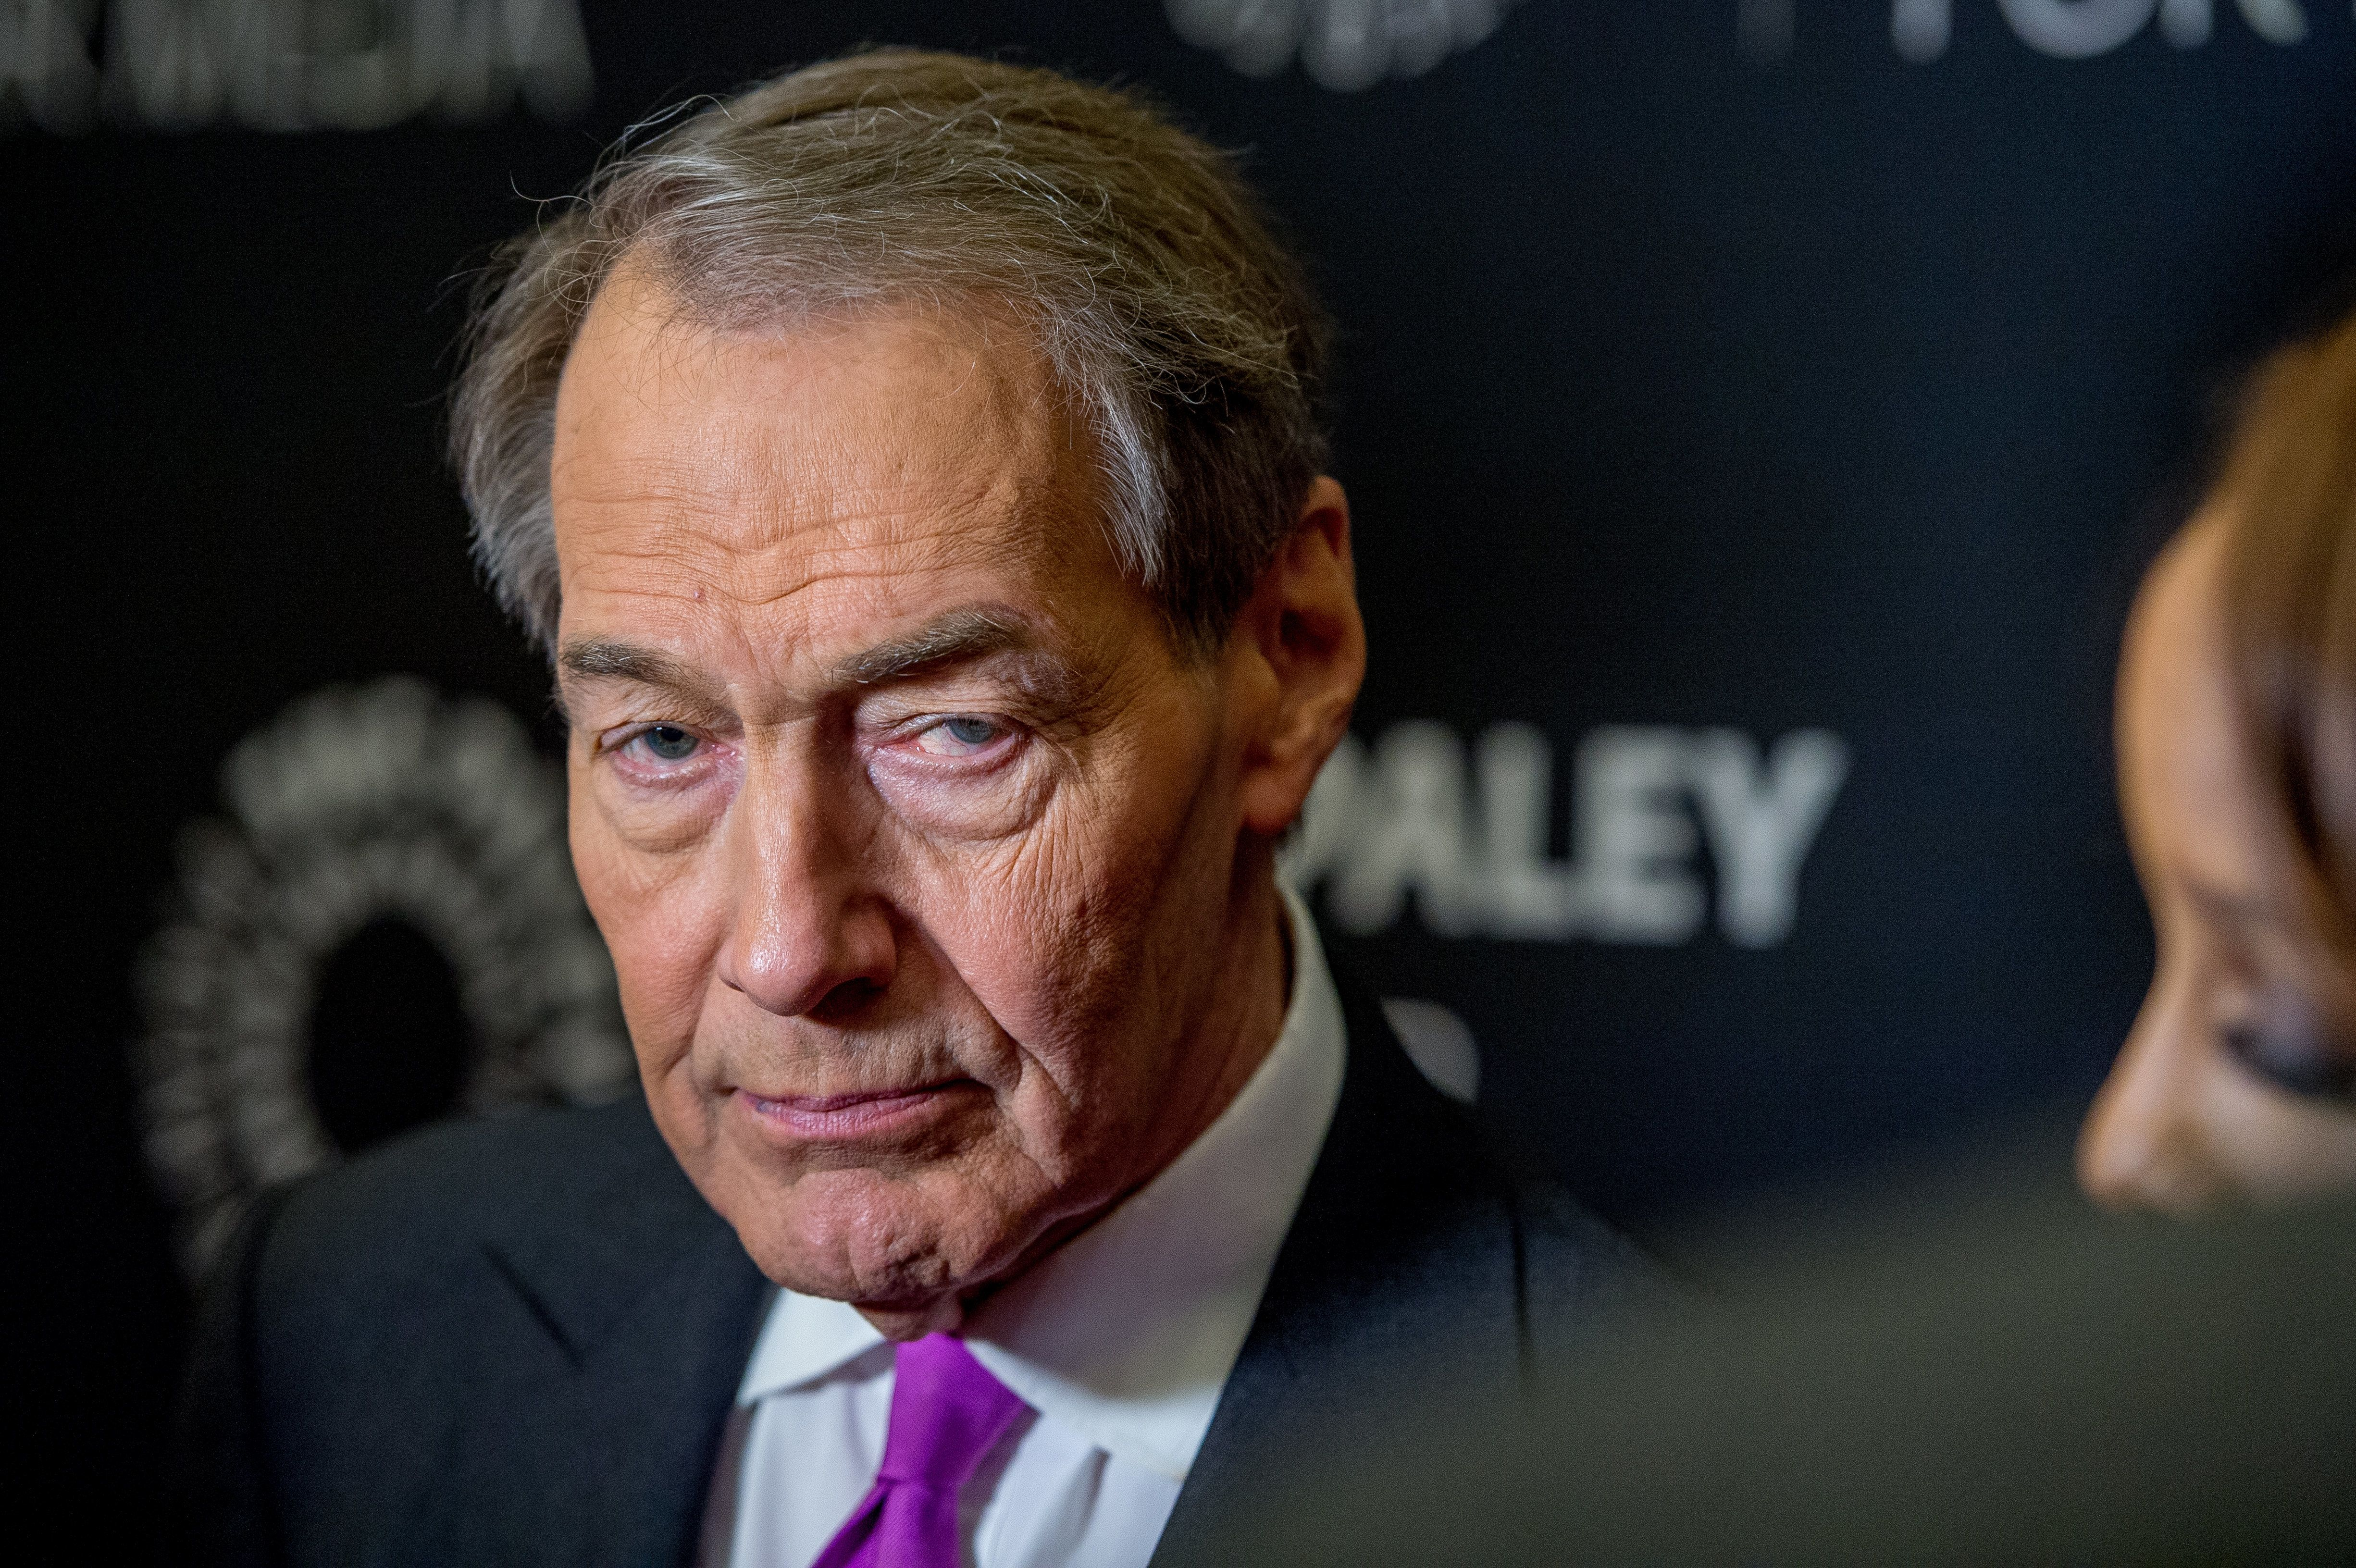 More Women Accuse Charlie Rose of Sexual Abuses